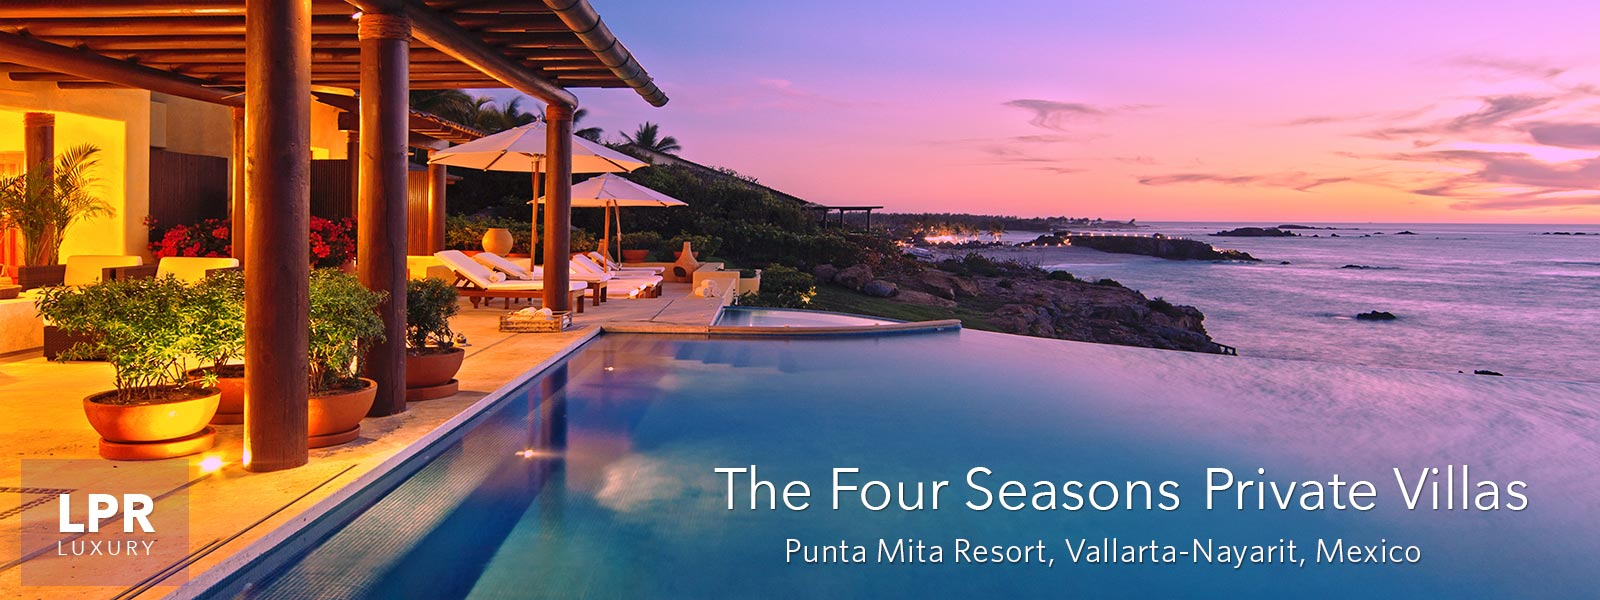 Four Seasons Private Villas - Luxury Punta Mita Real Estate and Vacation Rentals Villas